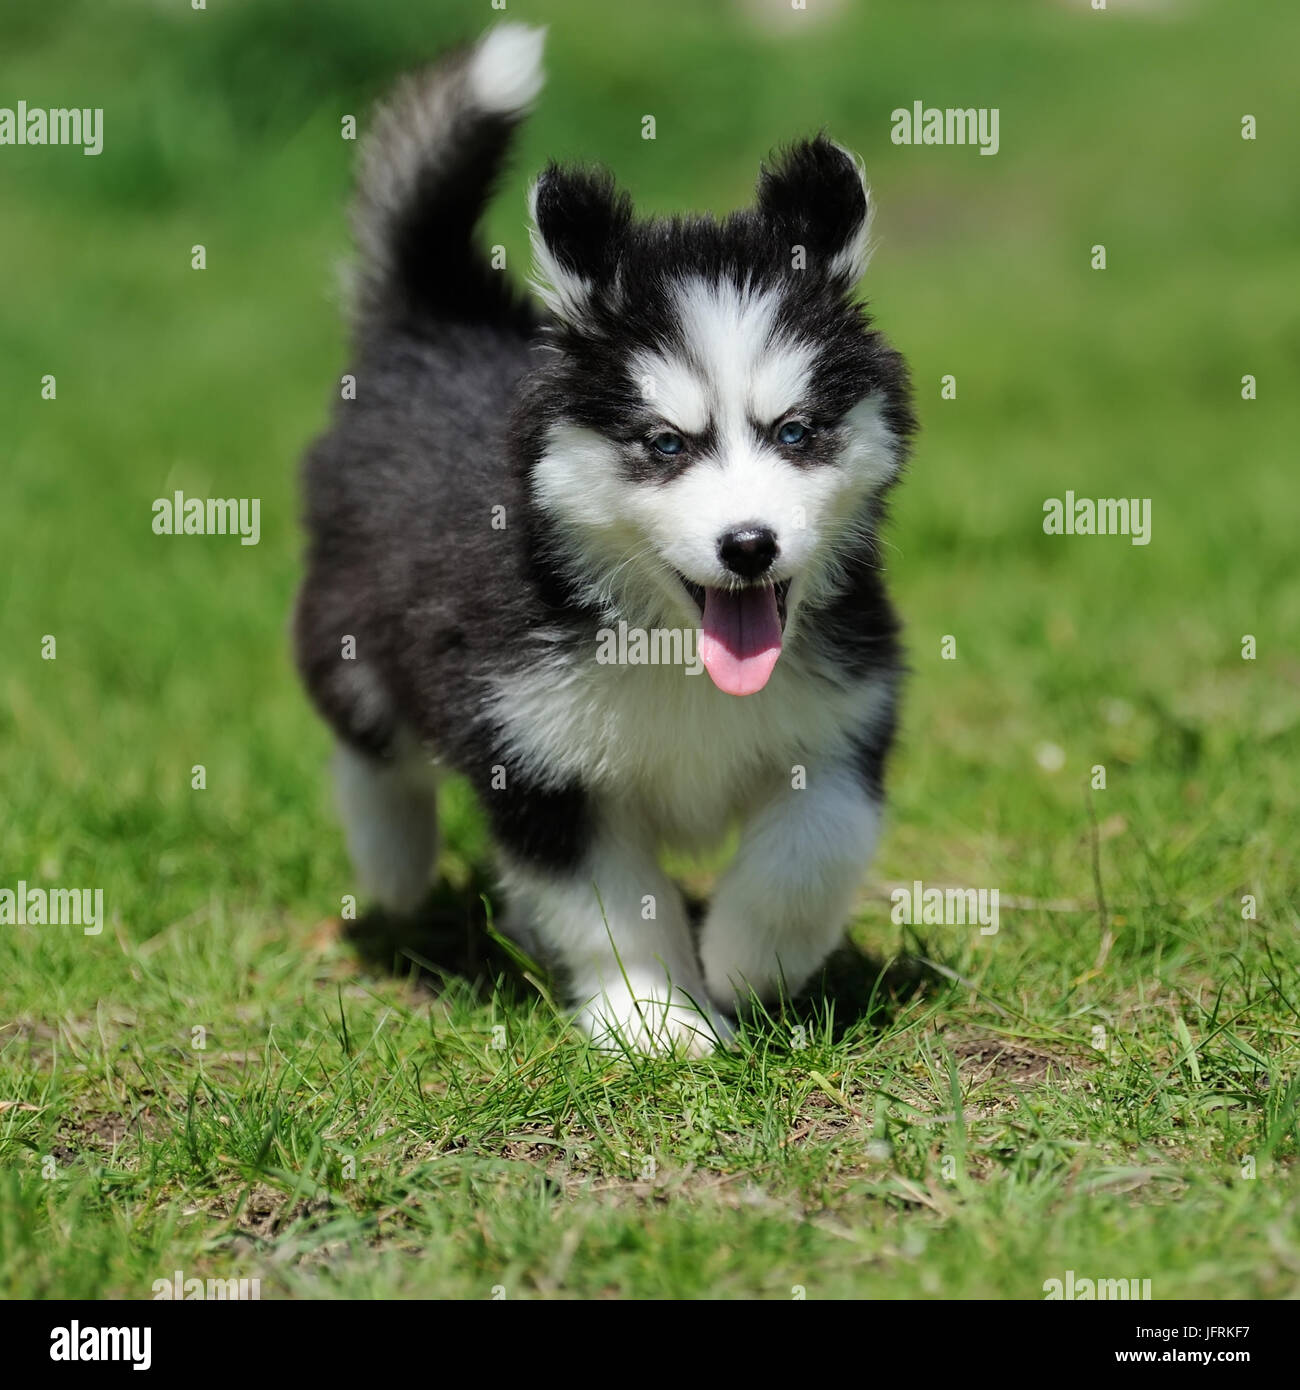 Cute Little Siberian Husky Puppy In Grass Stock Photo 147423003 Alamy